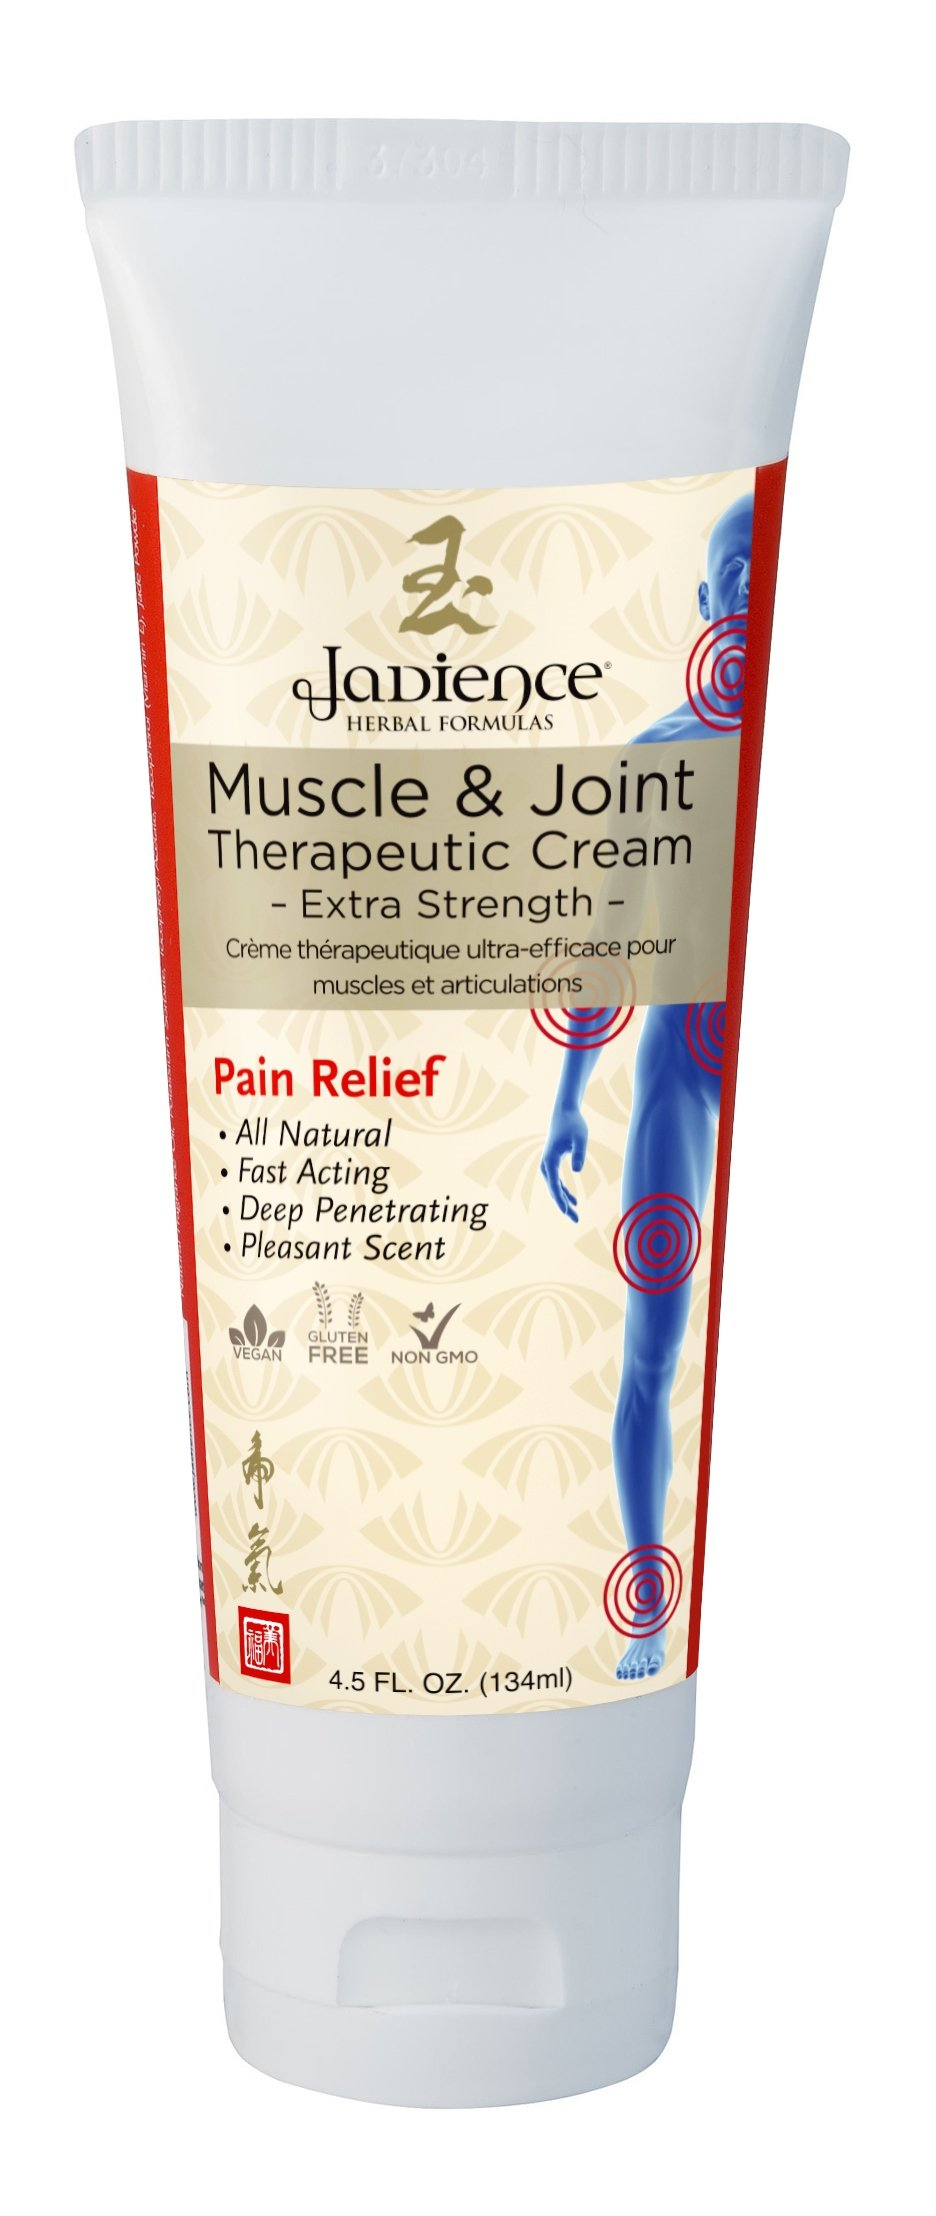 Muscle & Joint Therapeutic Cream - Extra Strength - 4.5oz | Analgesic Joint Cream for Pain | Experience Lower Back Pain Relief & Support | Arthritis & Inflammation Relief | Dit Da Jow Rub by Jadience